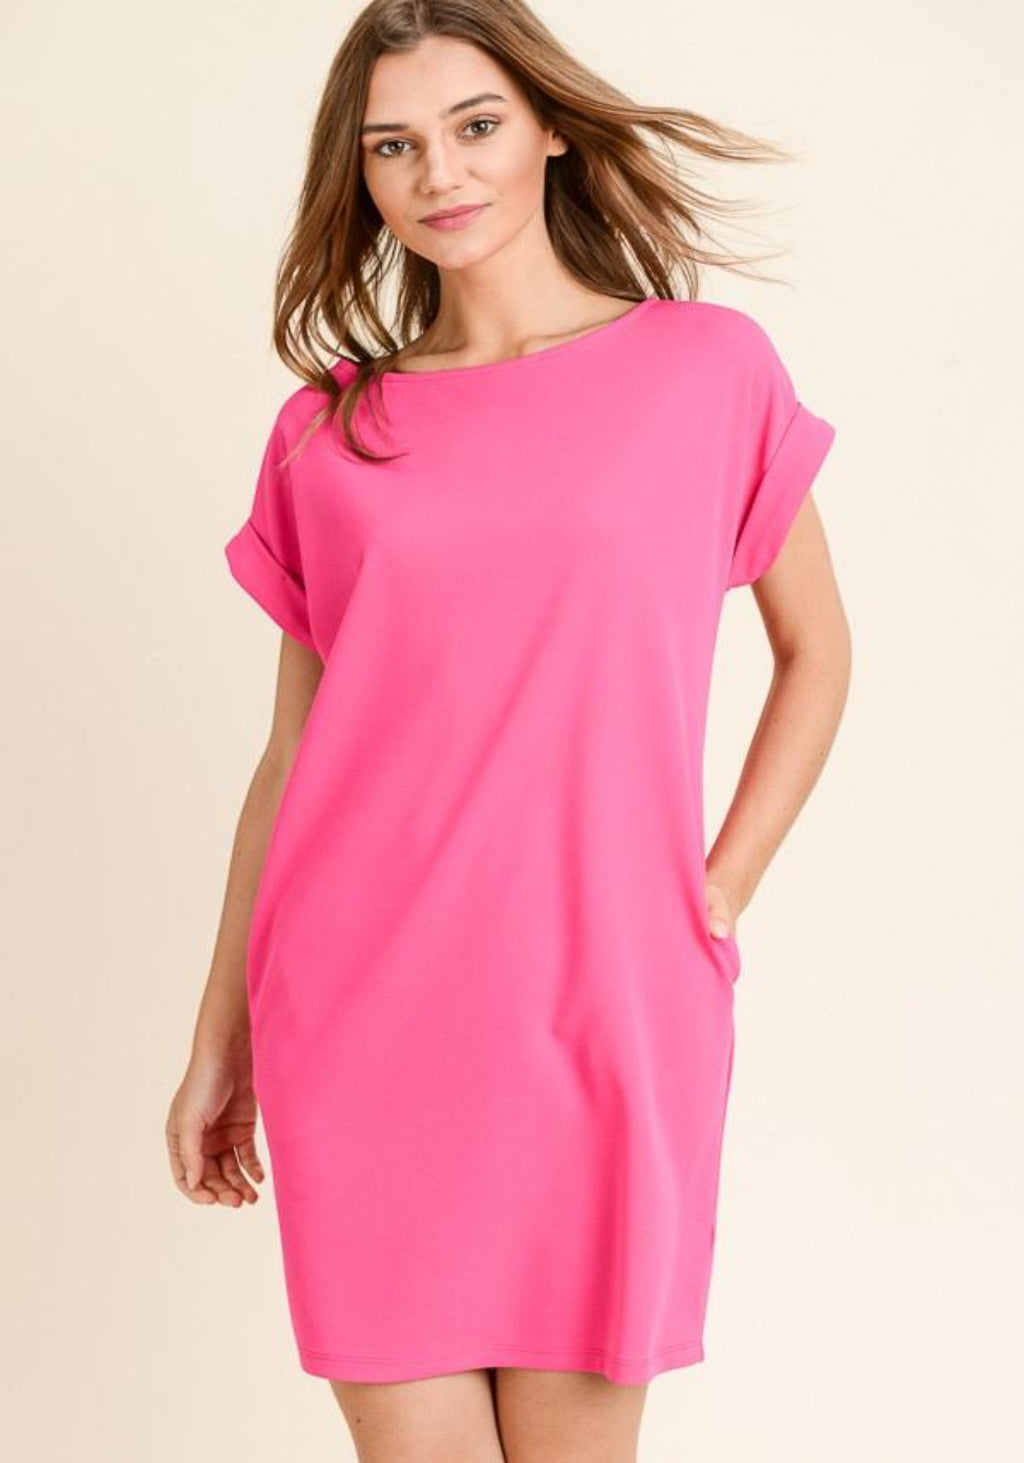 FUCHSIA SHIFT DRESS